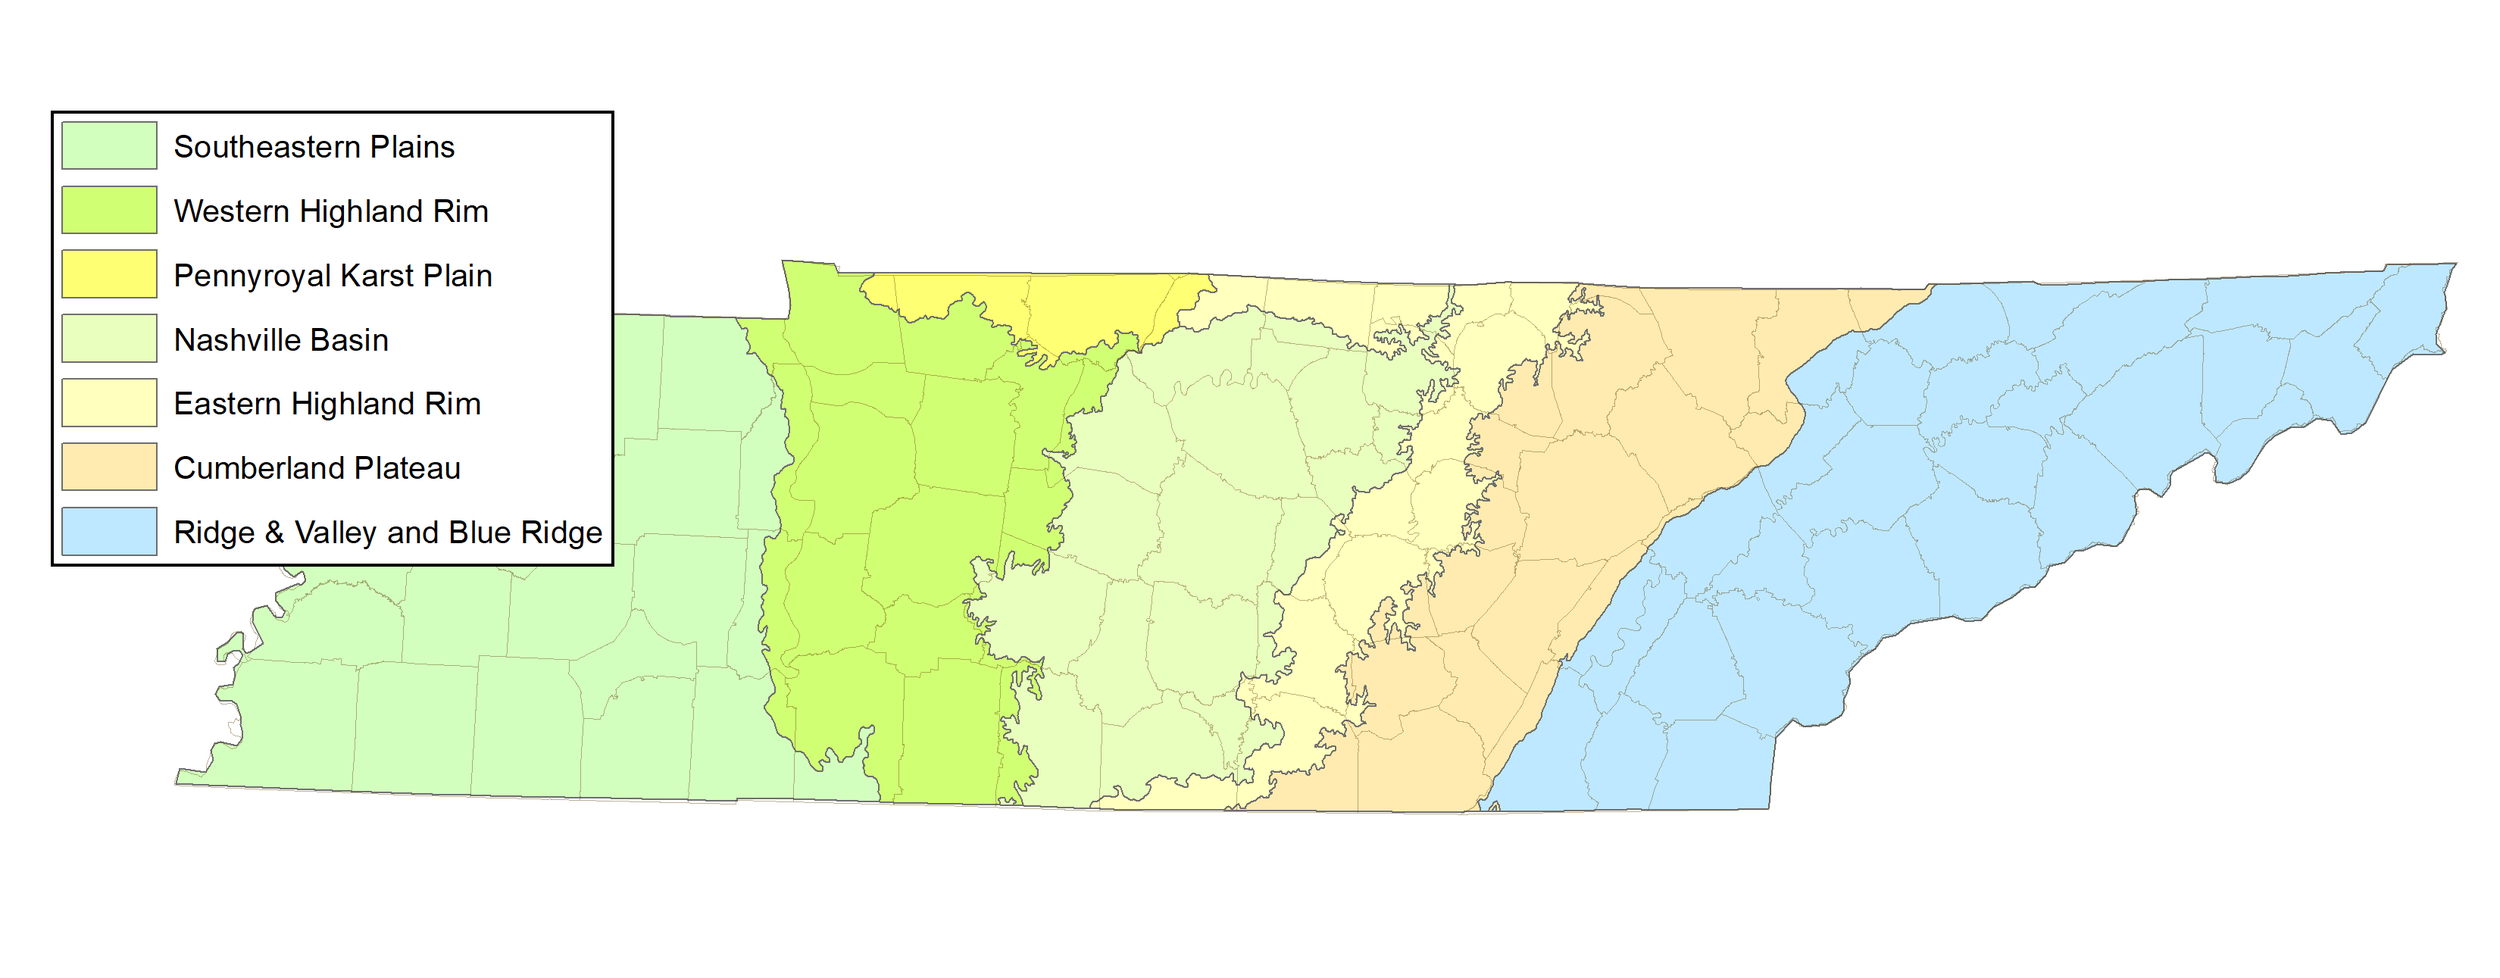 If you aren't sure which region you're surveying in, refer to this map.